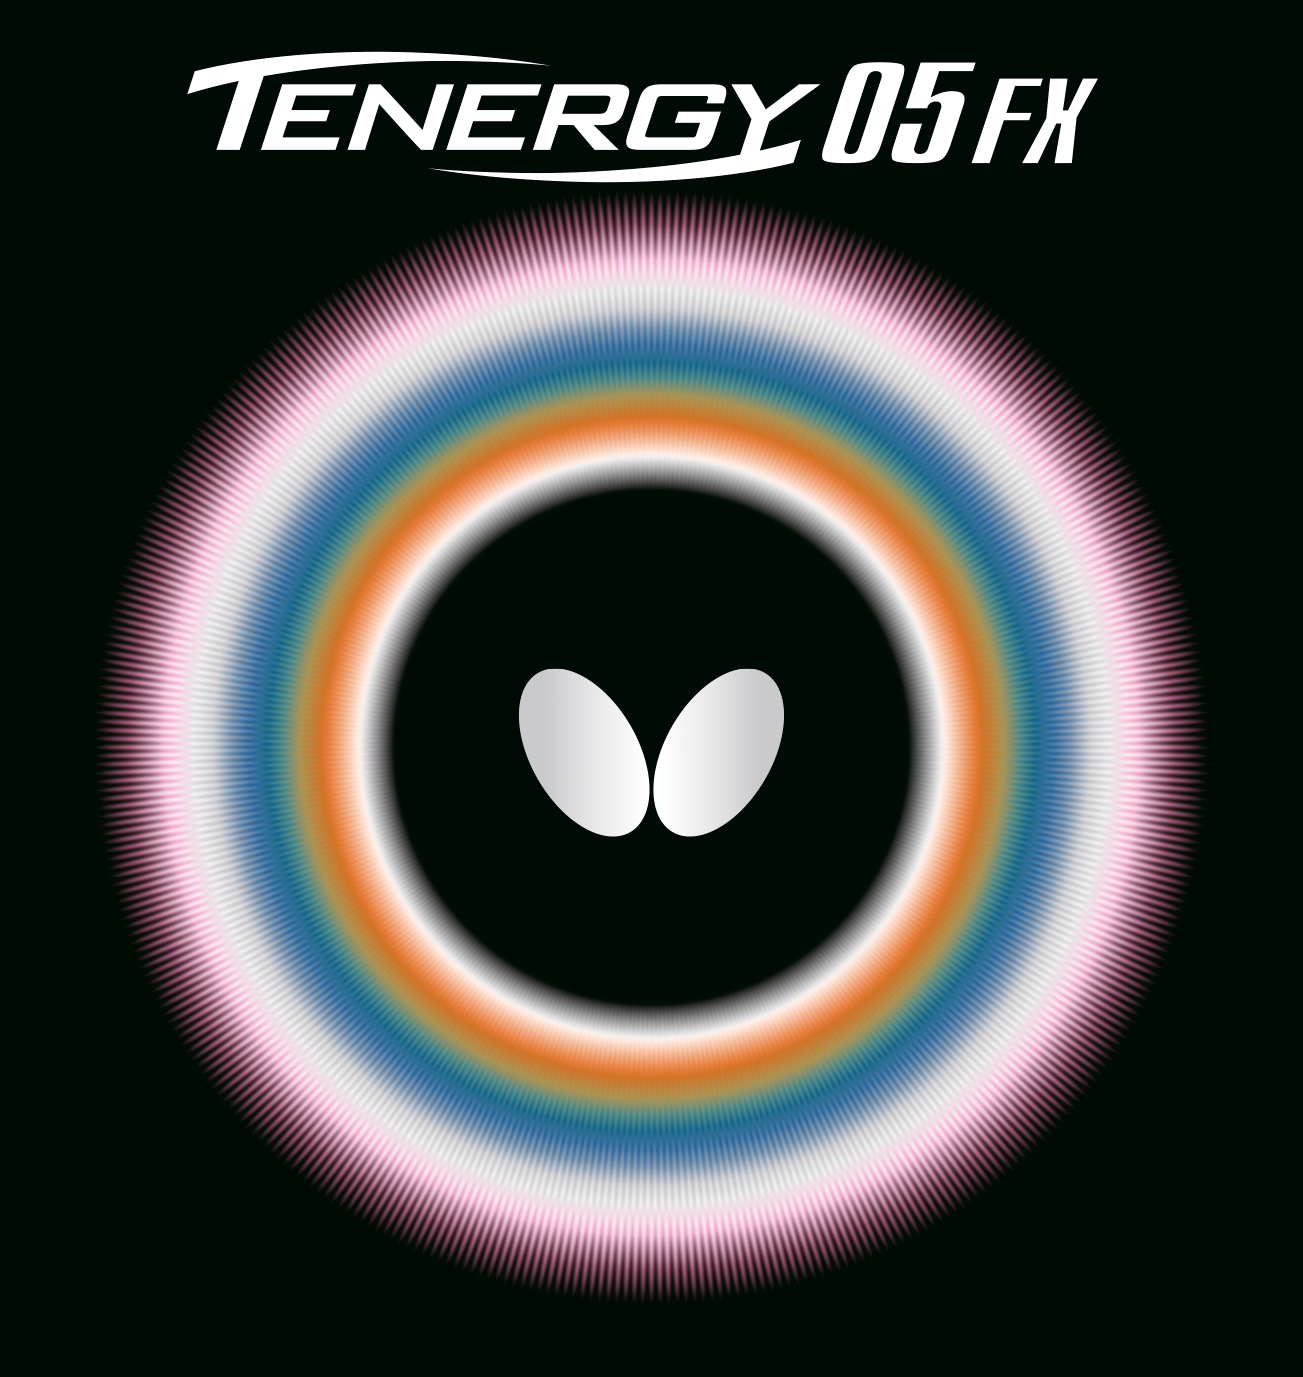 Butterfly- Tenergy 05 FX